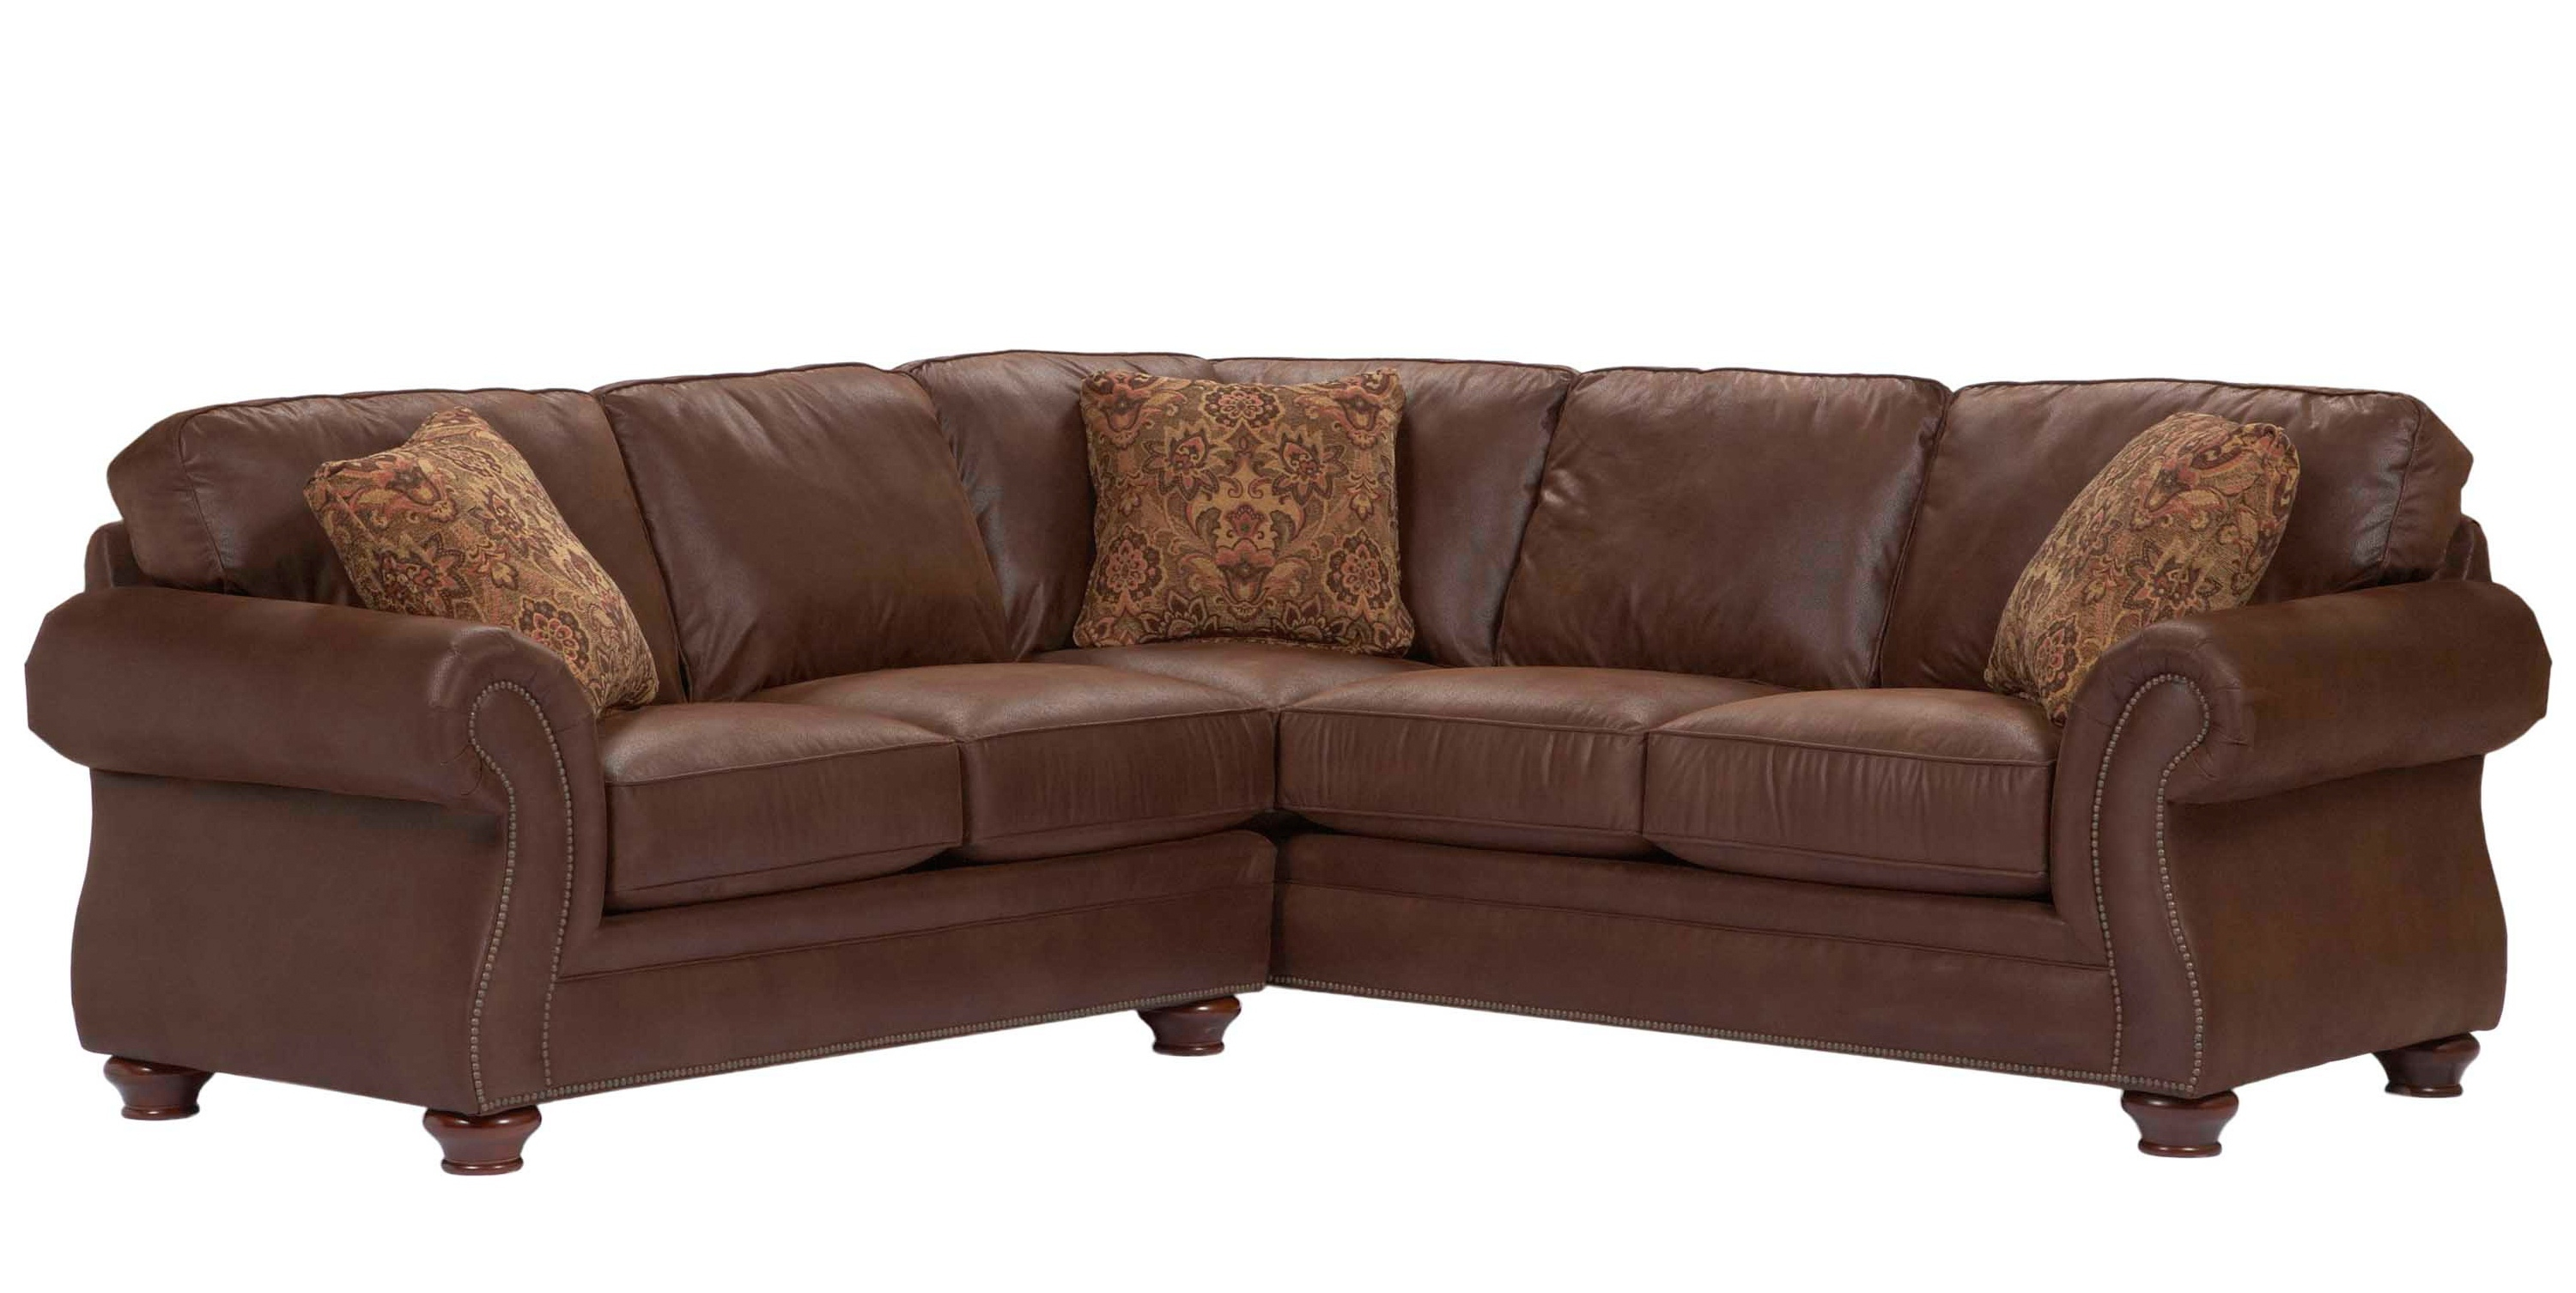 Broyhill Sectional Sofas In Popular Broyhill Laramie Sectional 5080 1Q/5080 4Q (View 5 of 20)